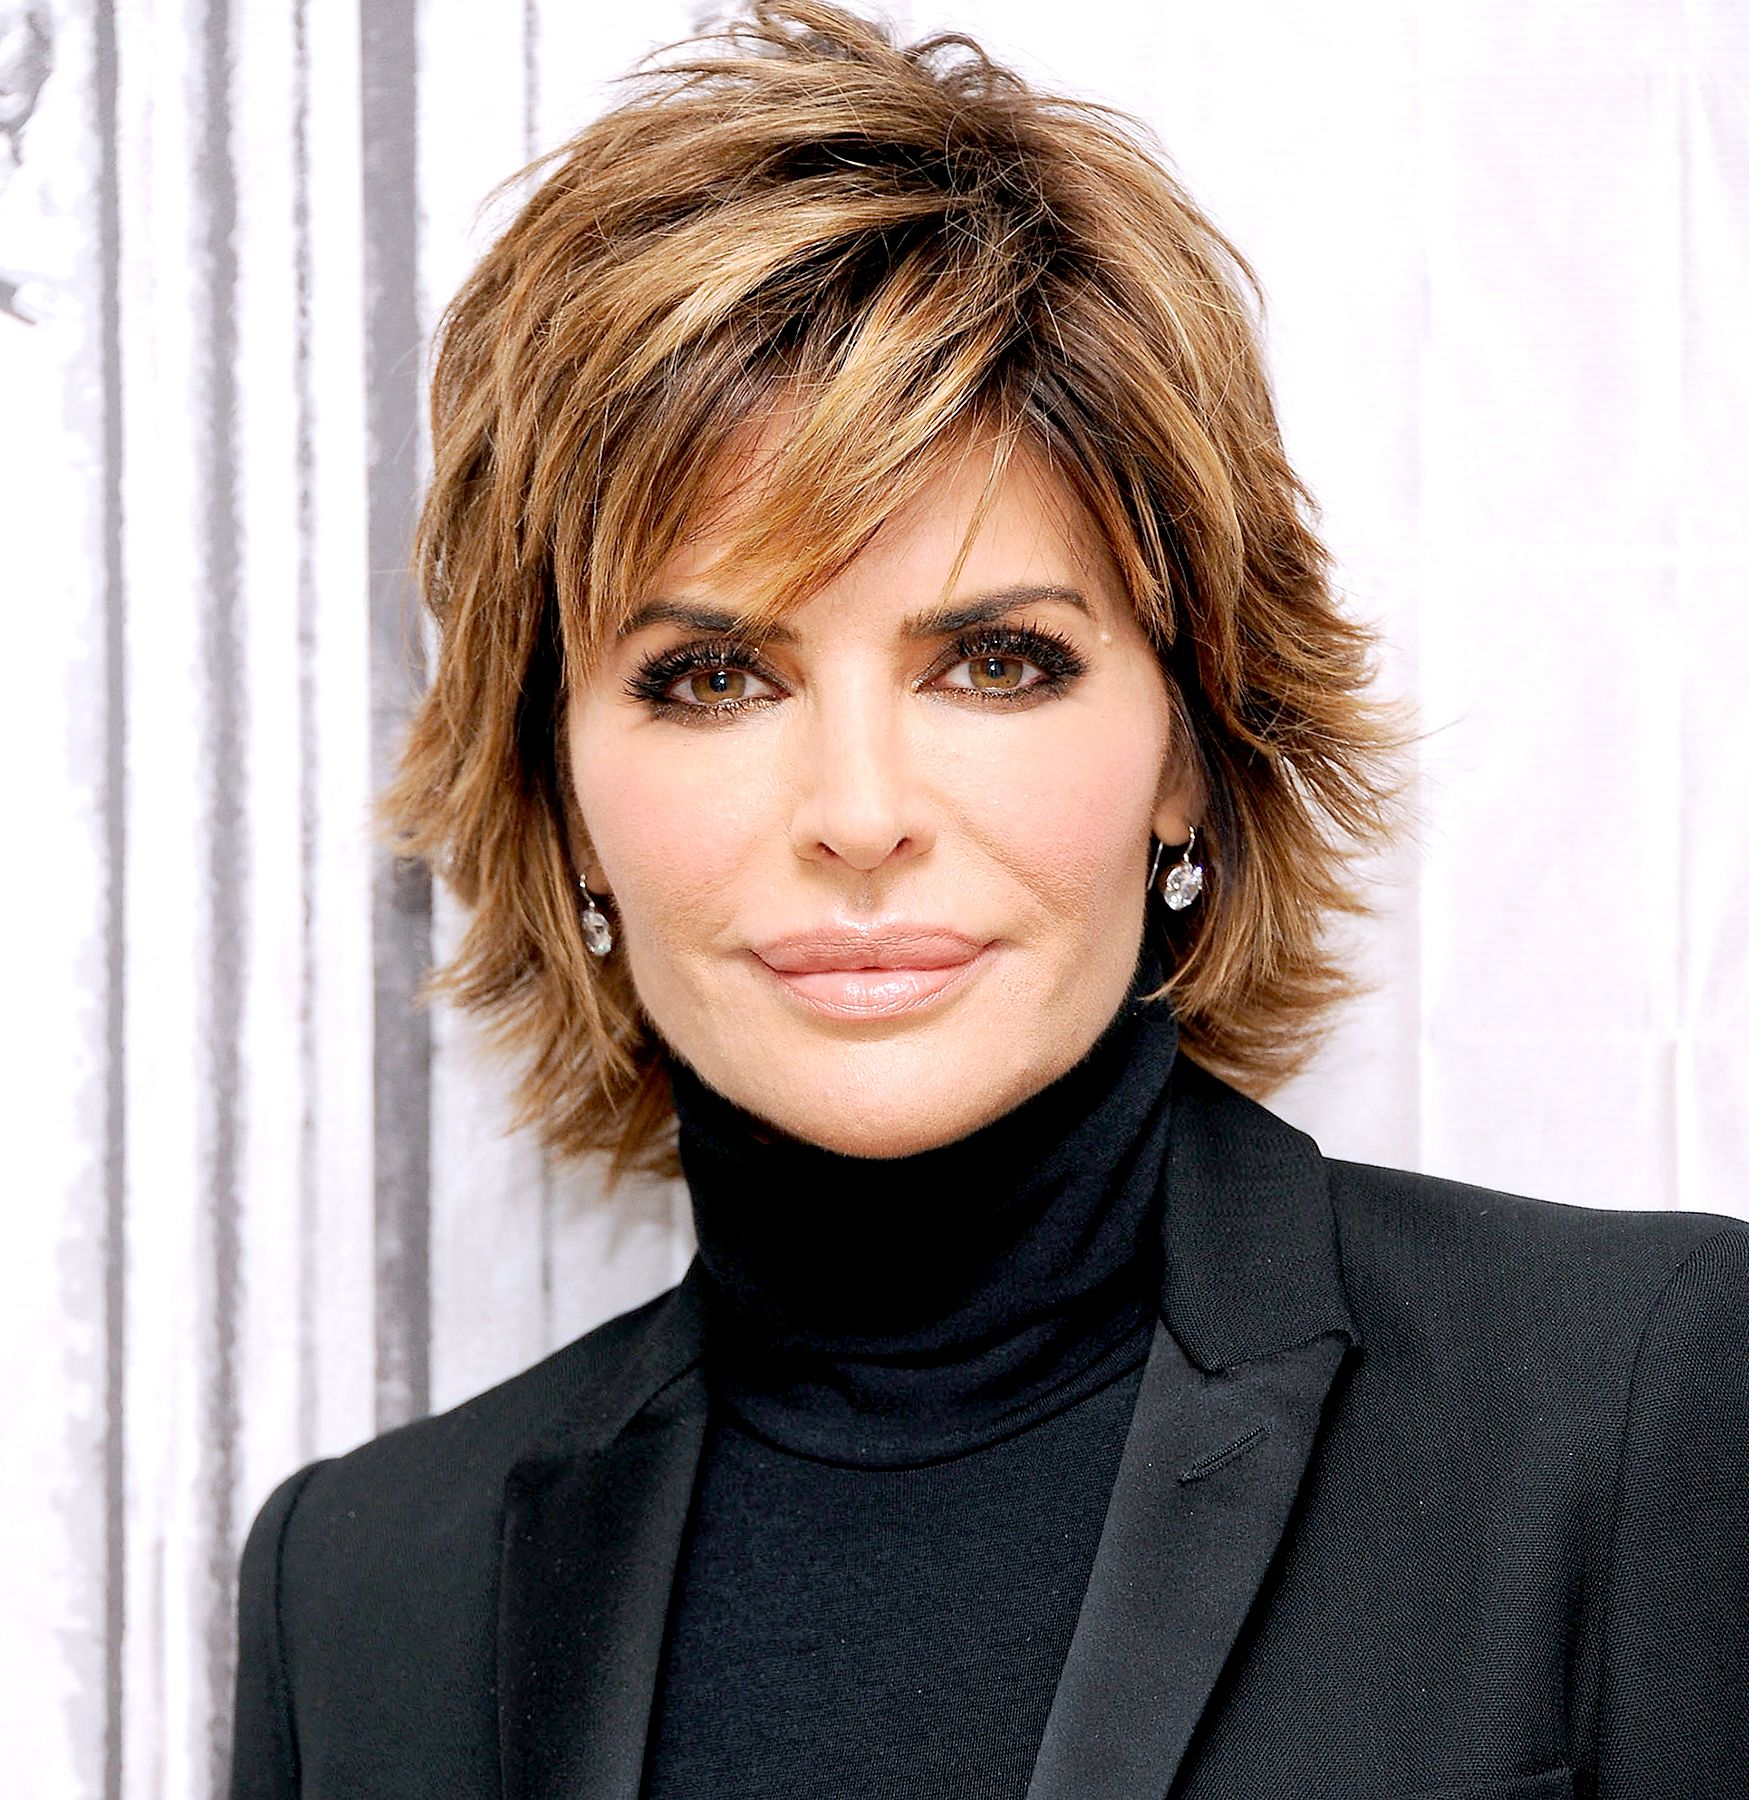 Lisa ann before plastic surgery short hairstyle 2013 - Lisa Rinna Changes Her Hairstyle For First Time In 20 Years